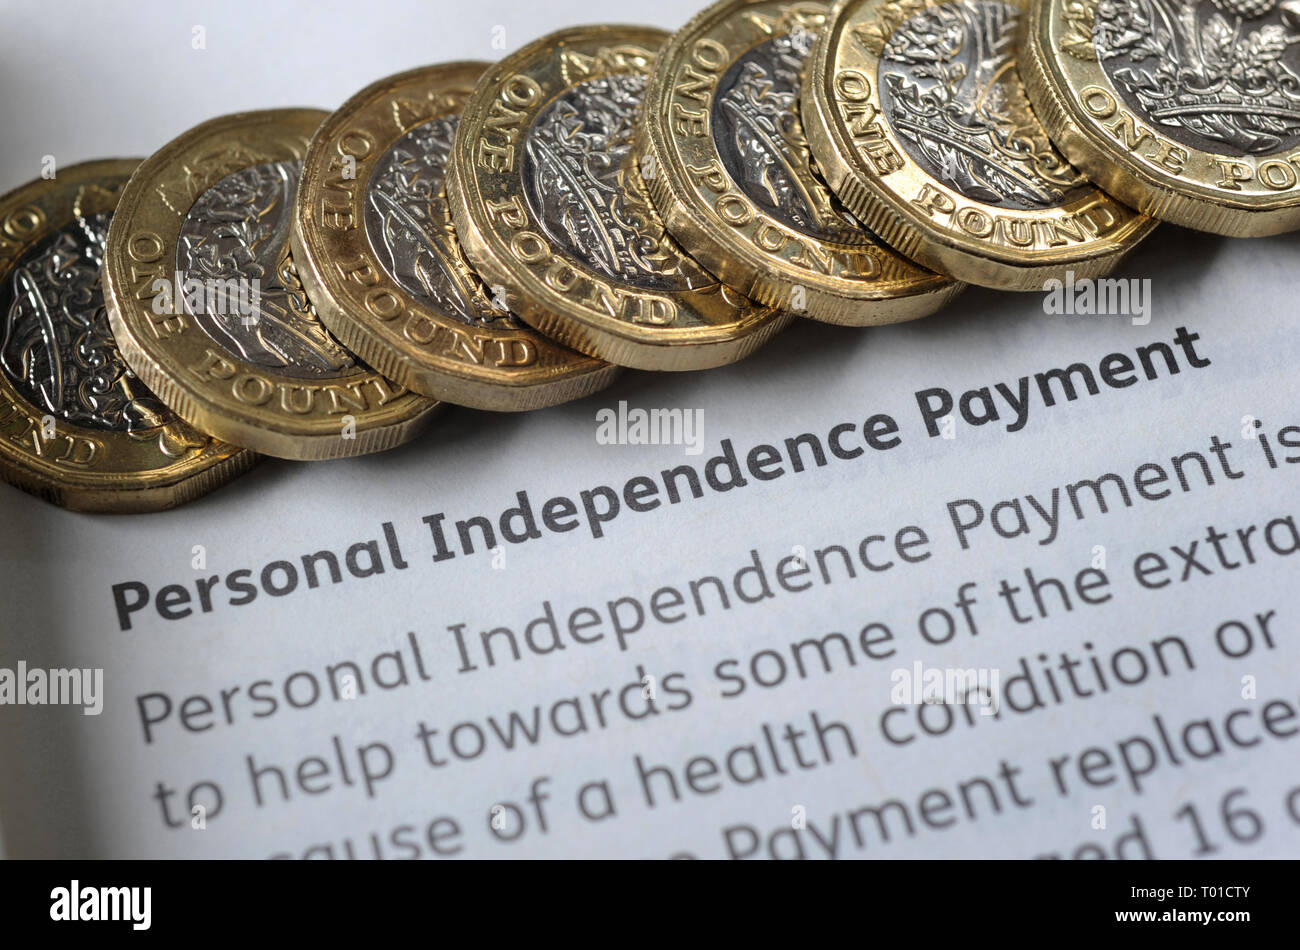 DWP PERSONAL INDEPENDENCE PAYMENT LEAFLET WITH ONE POUND COINS RE BENEFITS THE ELDERLY PENSIONERS LOW INCOME DISABILITY PENSION CREDIT ETC UK - Stock Image